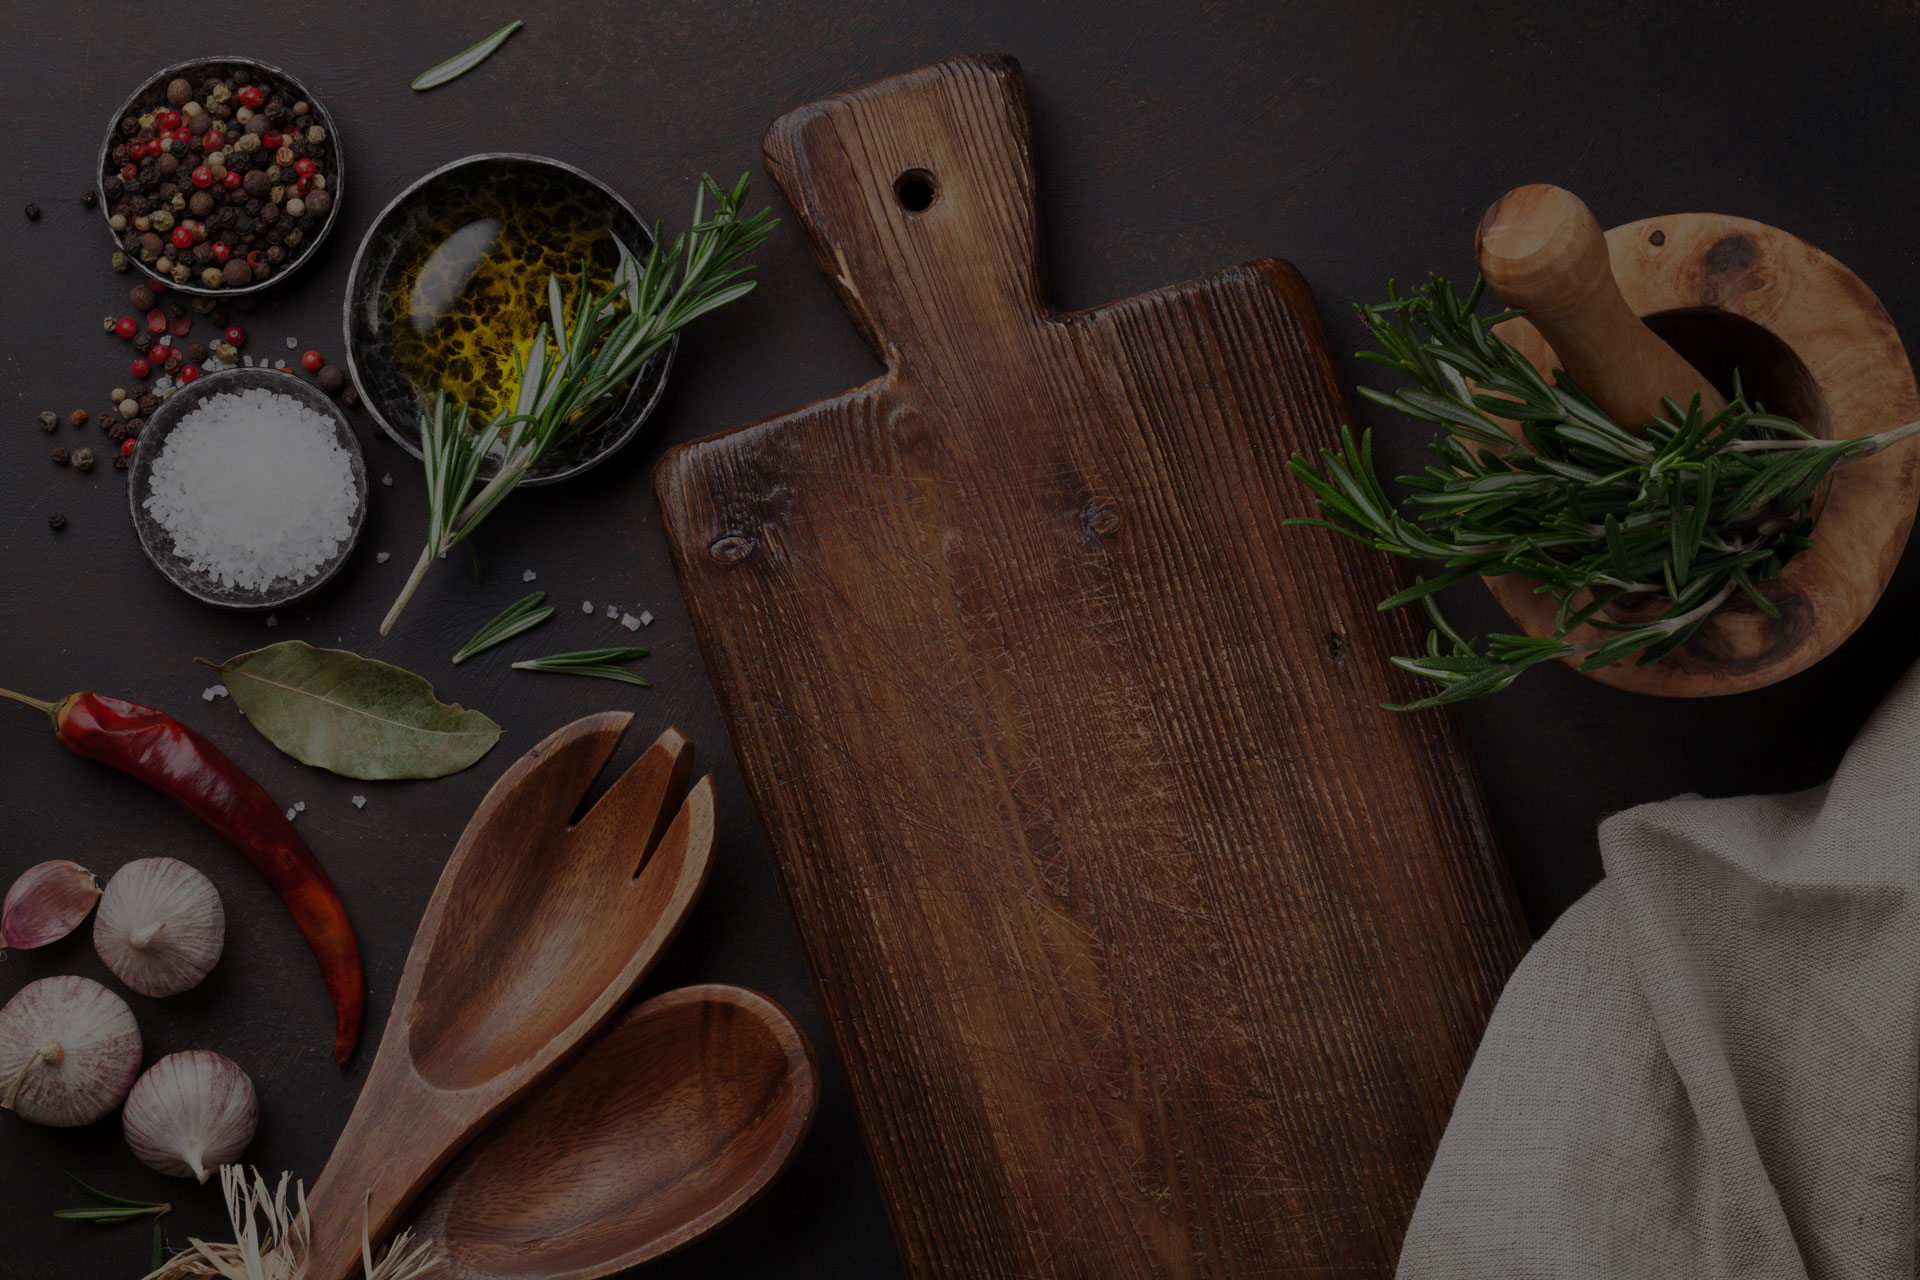 Cooking table with herbs spices and utensils